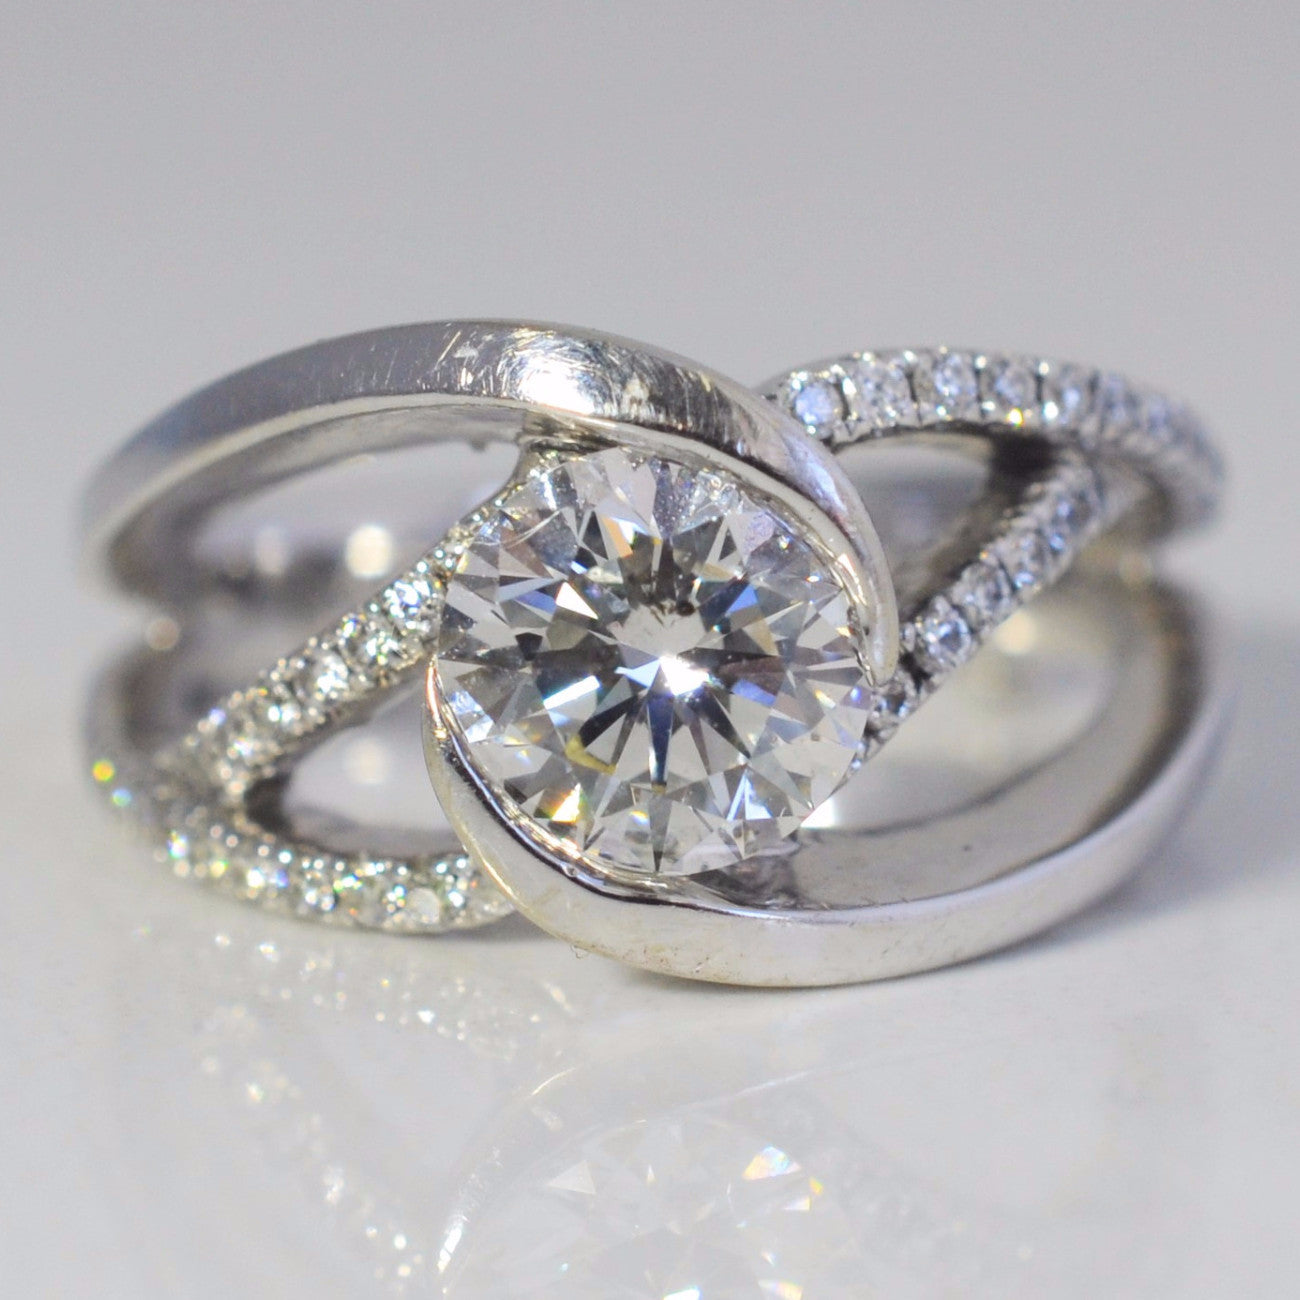 Spiral Design Engagement Ring | 1.56 ctw, SZ 6.25 |